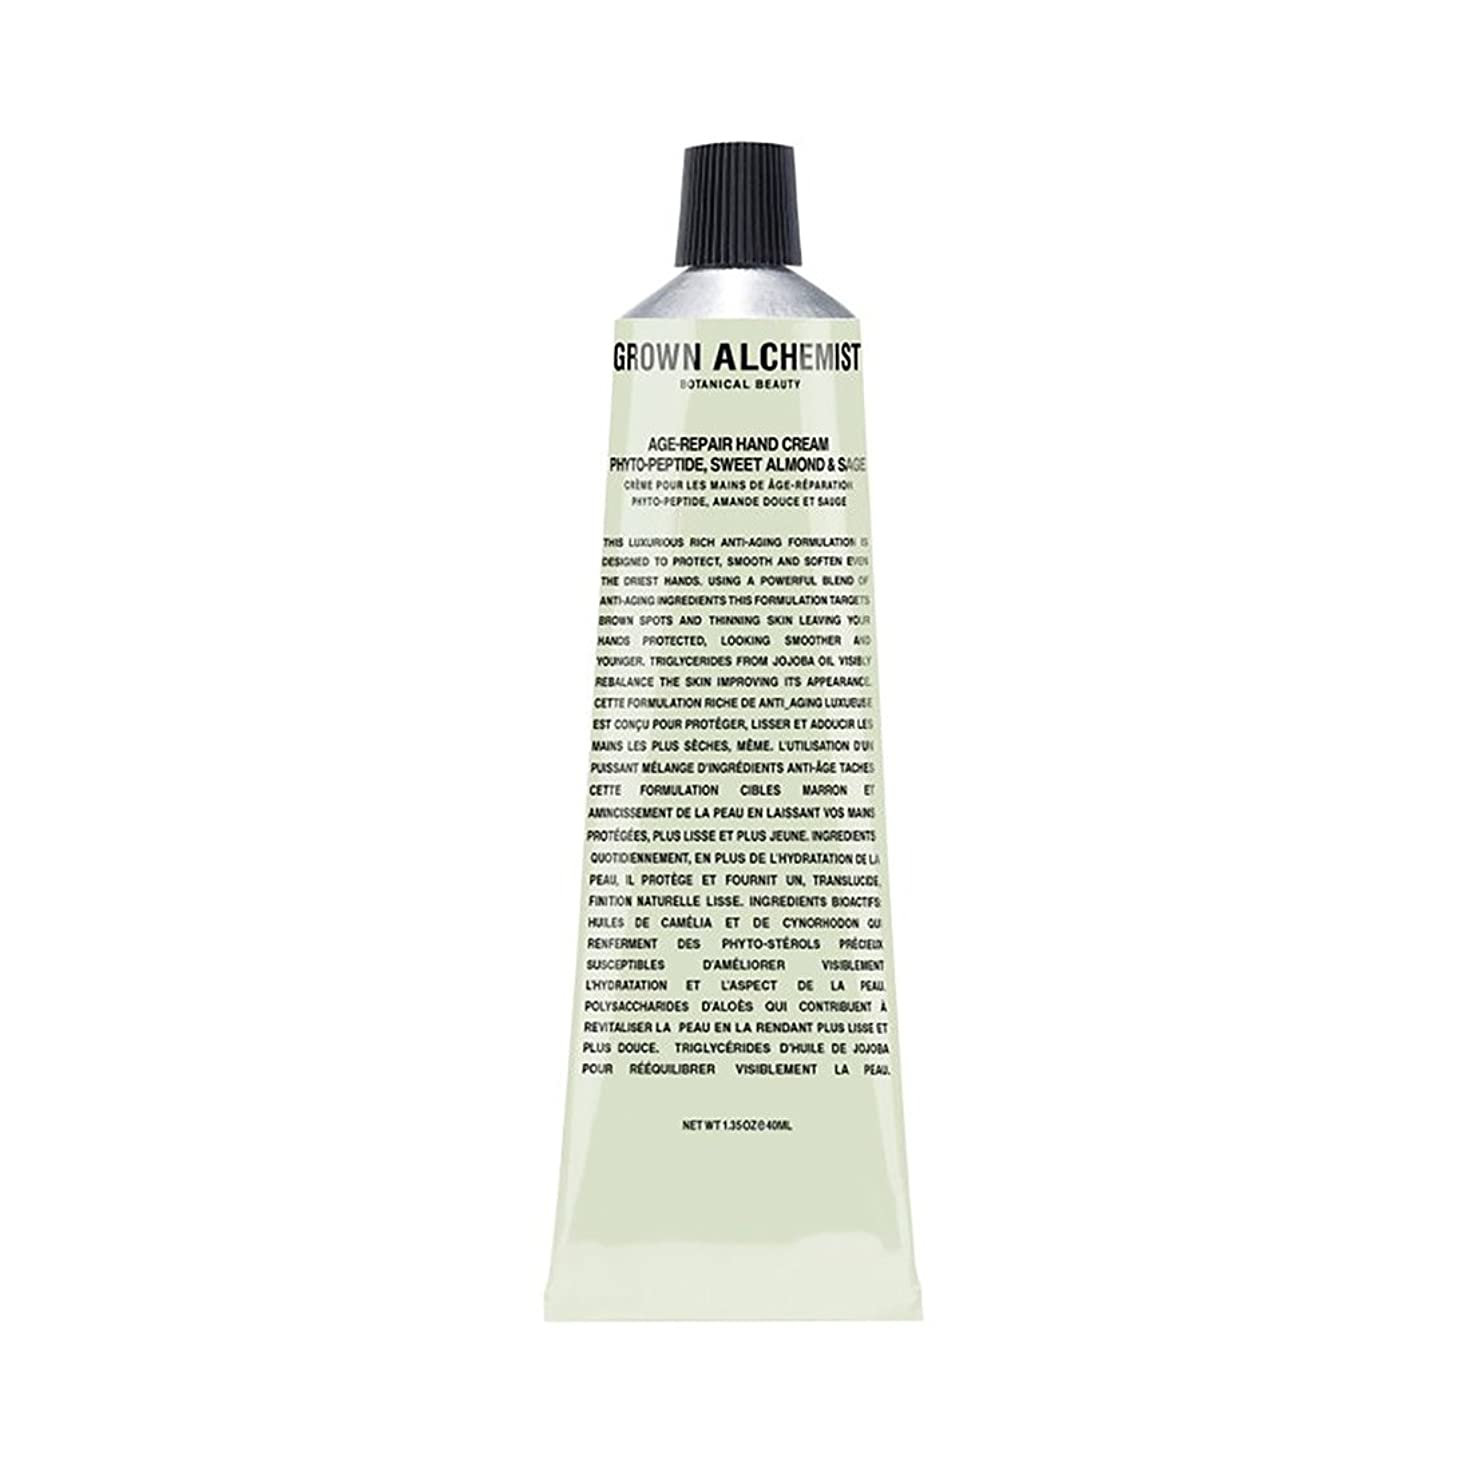 Grown Alchemist Age-Repair Hand Cream - Phyto-Peptide, Sweet Almond & Sage 40ml/1.35oz並行輸入品